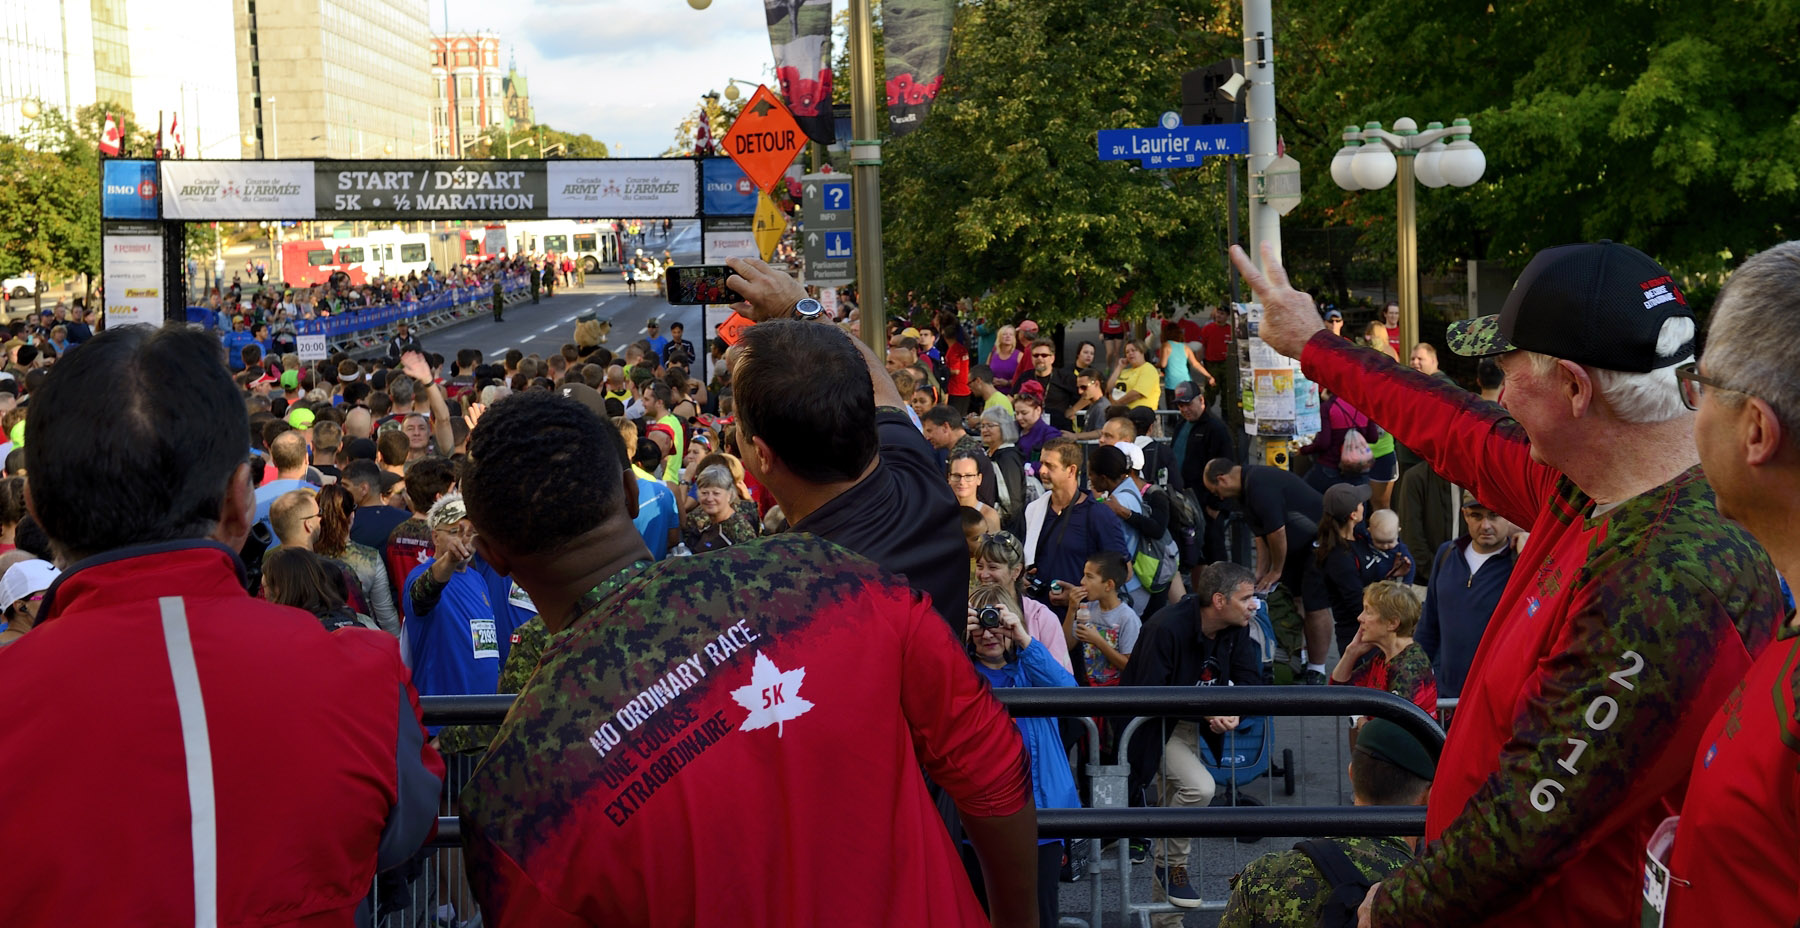 More than 20 000 participants invaded the streets of Ottawa for the five-kilometre and half-marathon races.